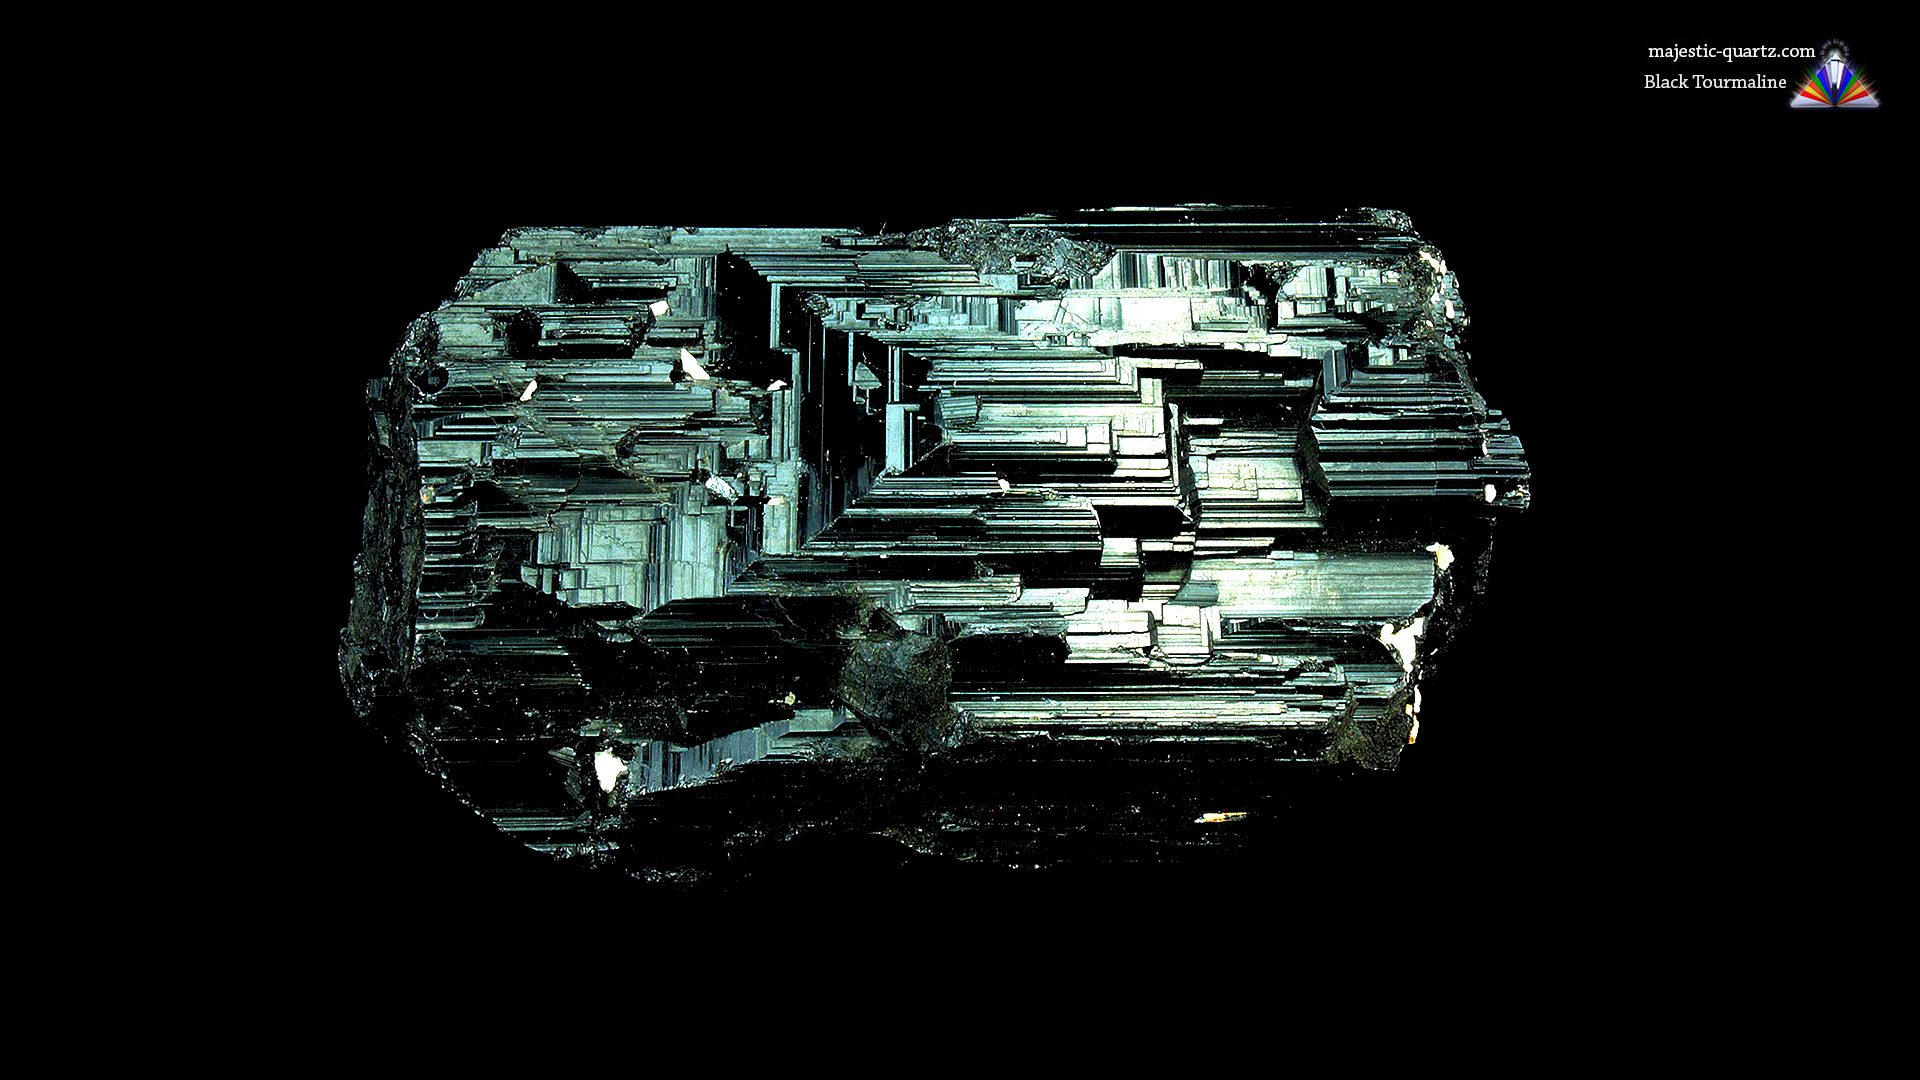 Black Tourmaline Crystal/Mineral Specimen - Photograph by Anthony Bradford